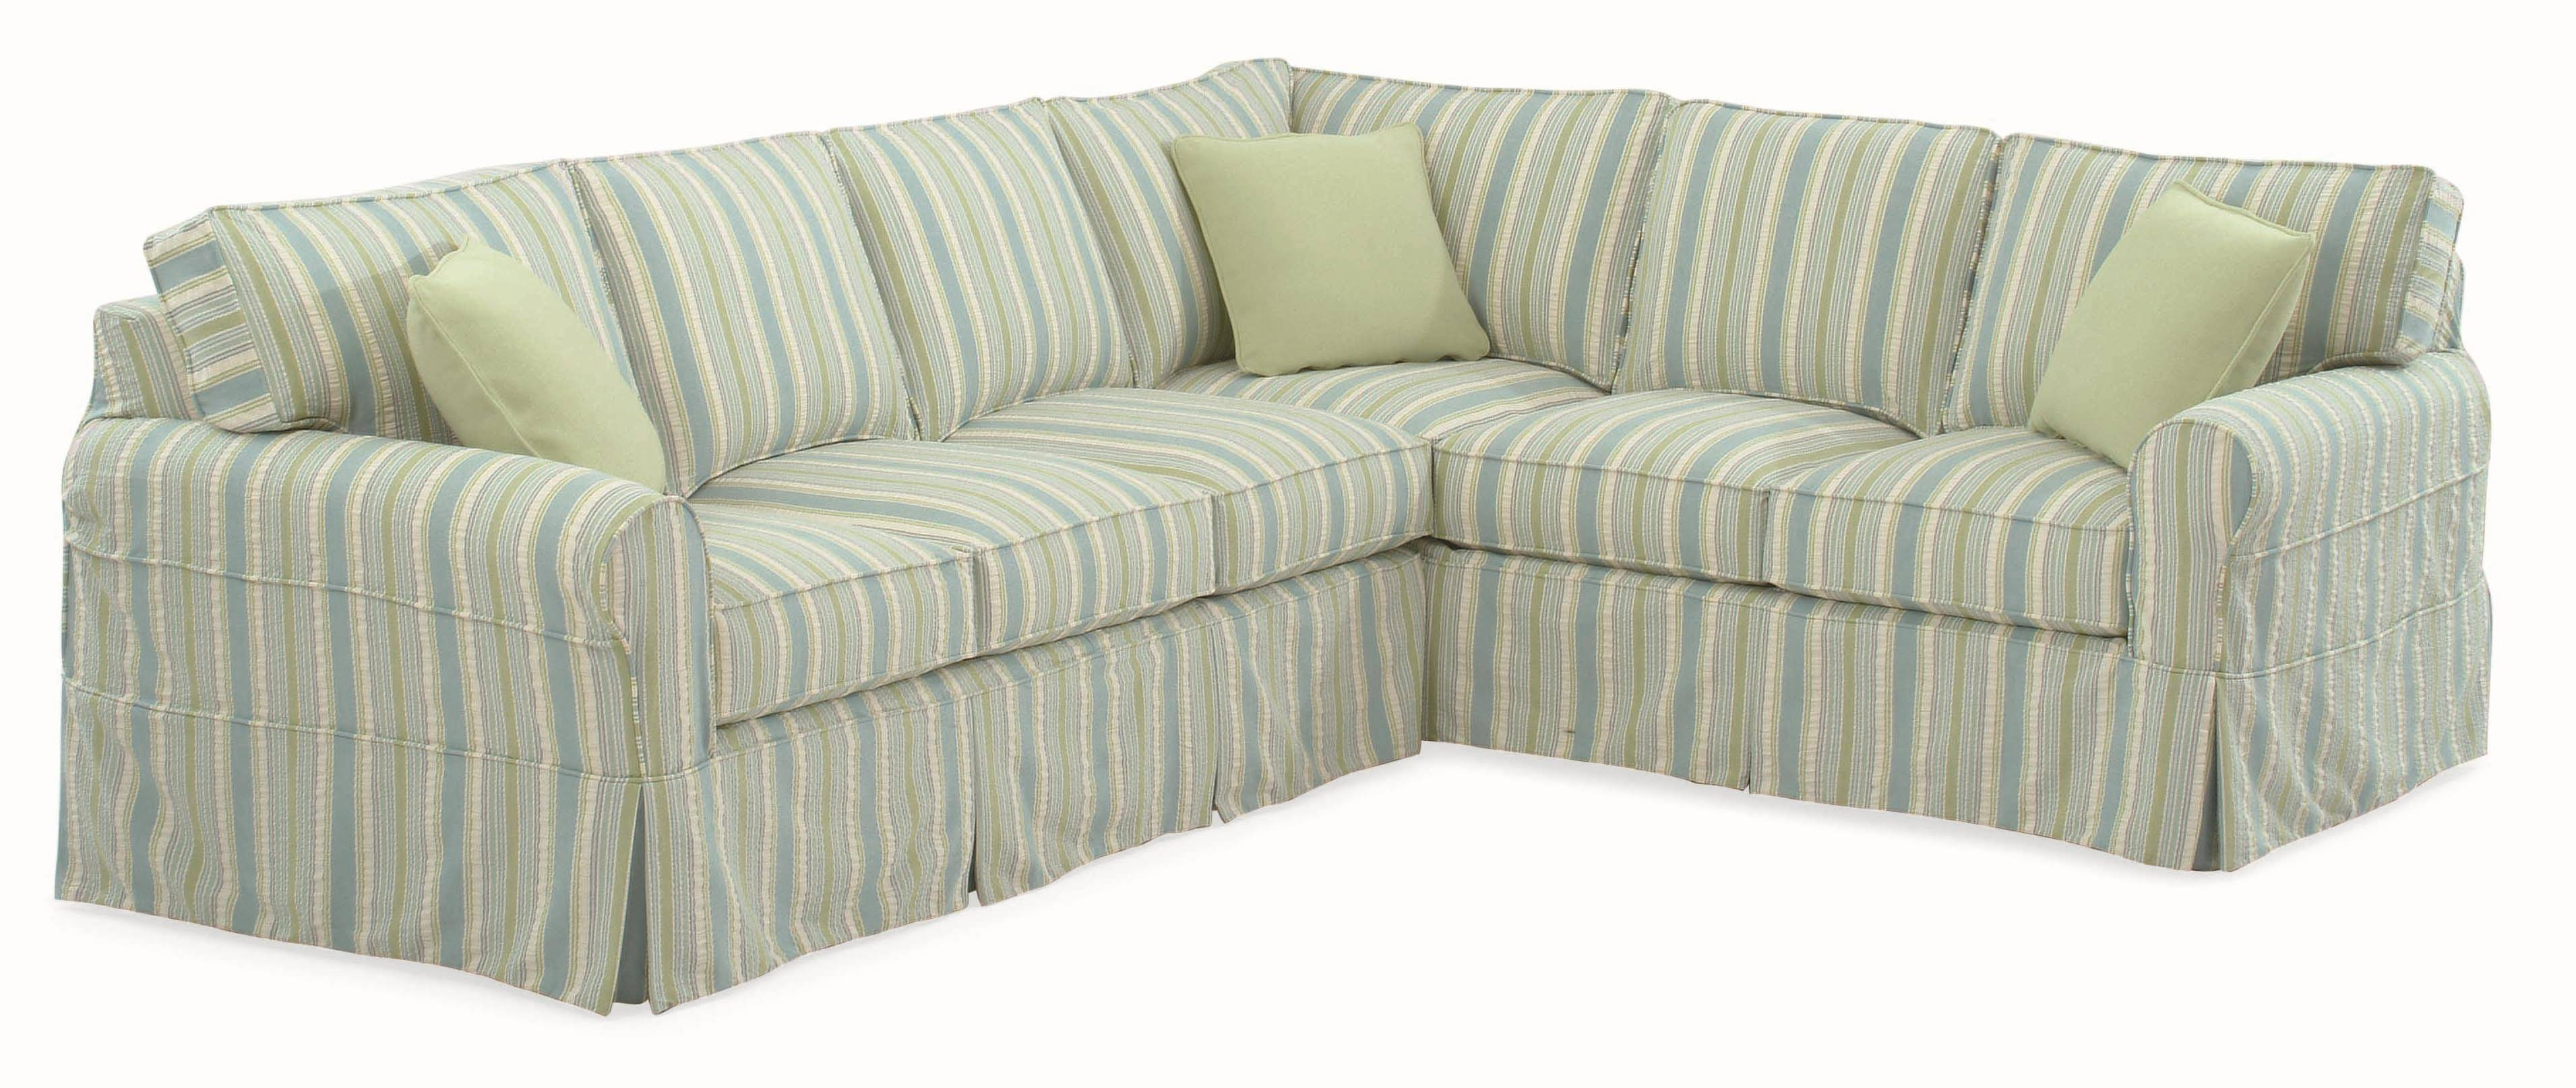 Braxton Culler 728 Casual Sectional Sofa With Rolled Arms And throughout Braxton Sofas (Image 1 of 15)